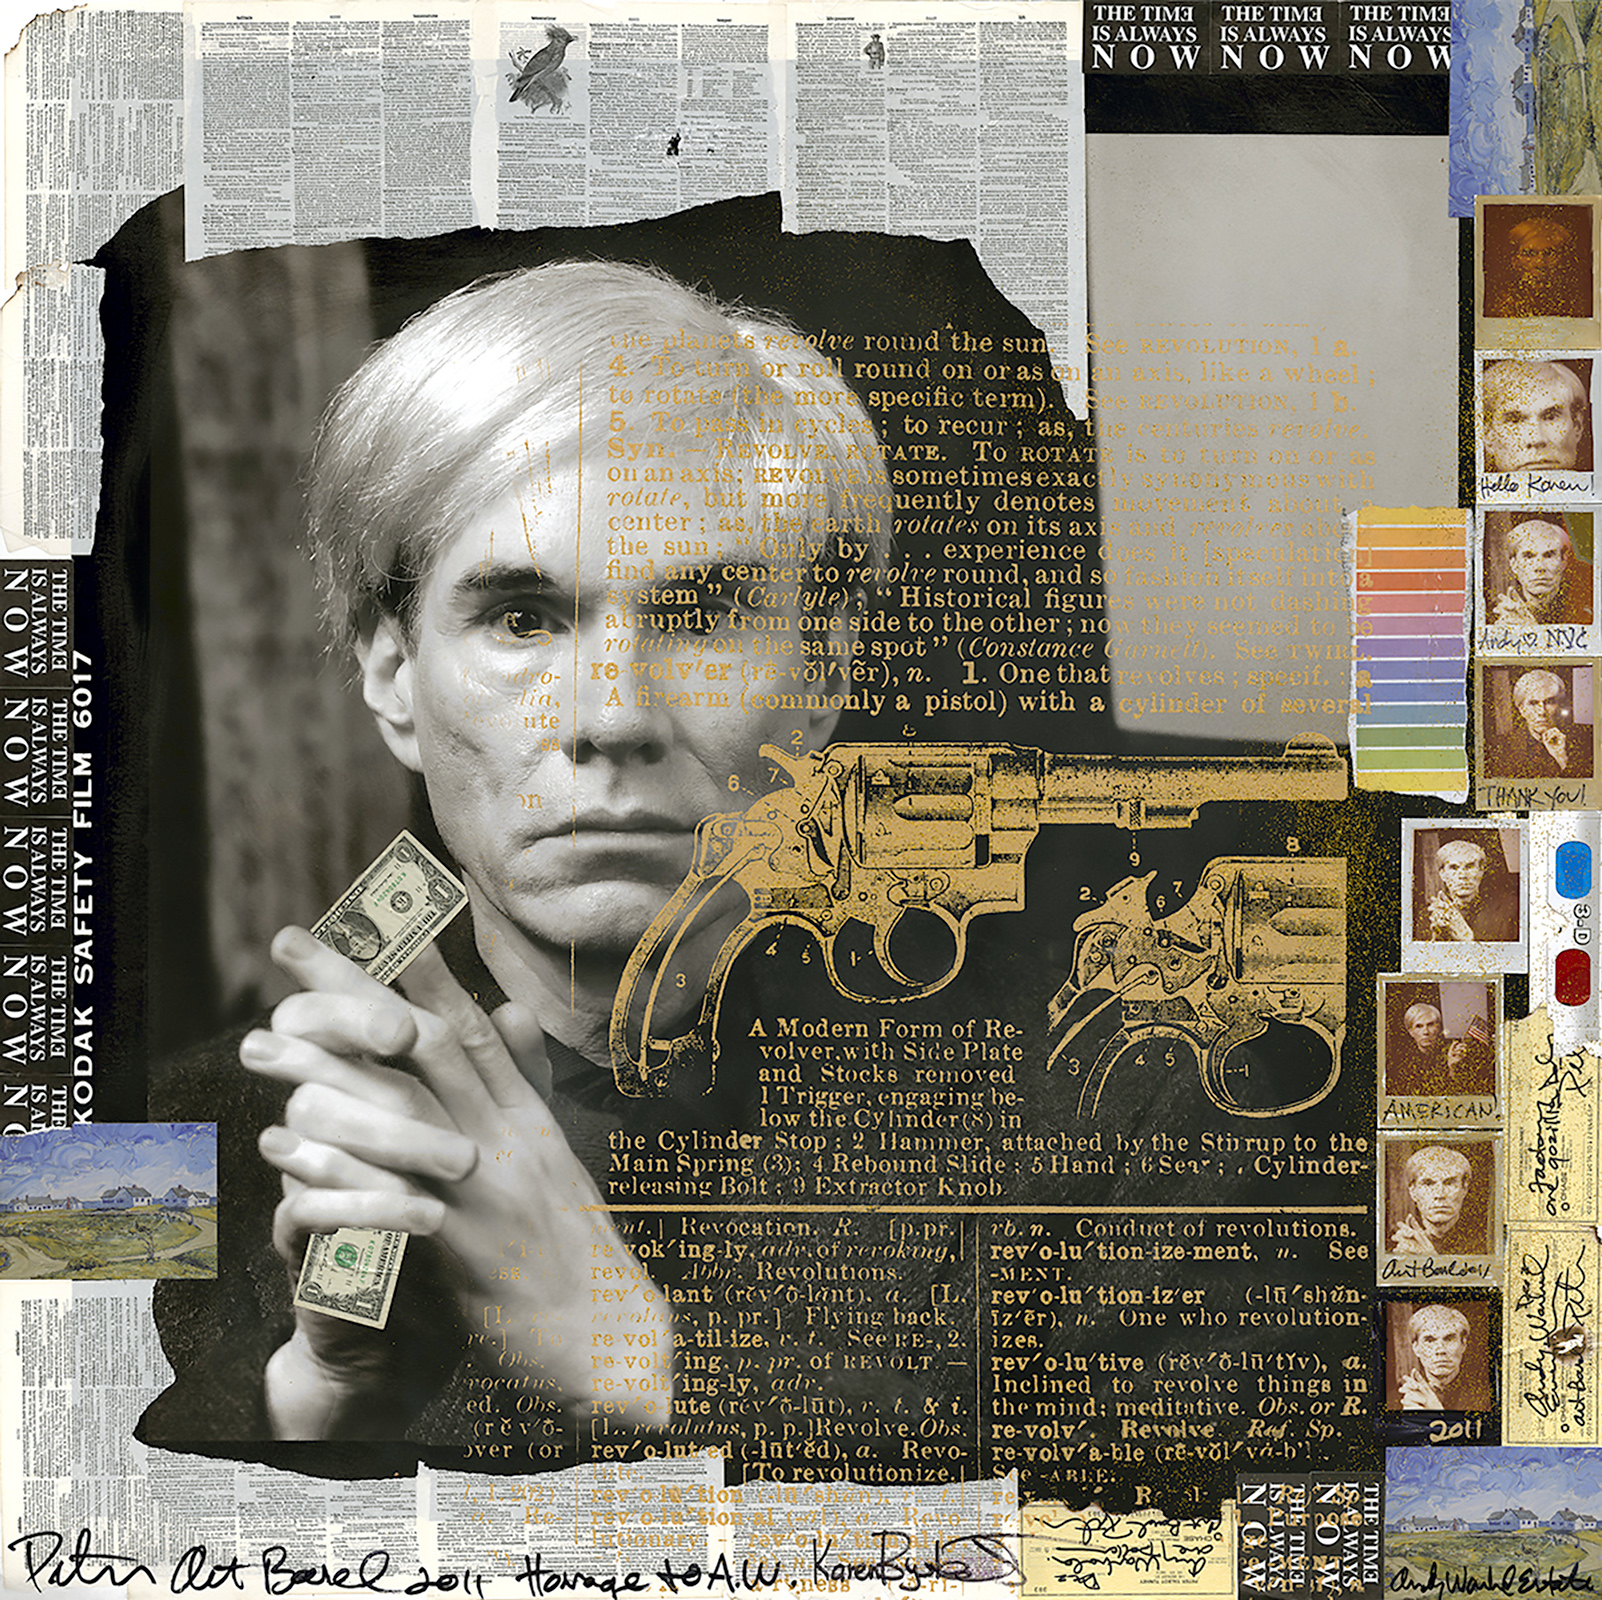 Karen Bystedt x Peter Tunney -  Andy with Golden Gun   Mixed Media, 27 x 27 inches